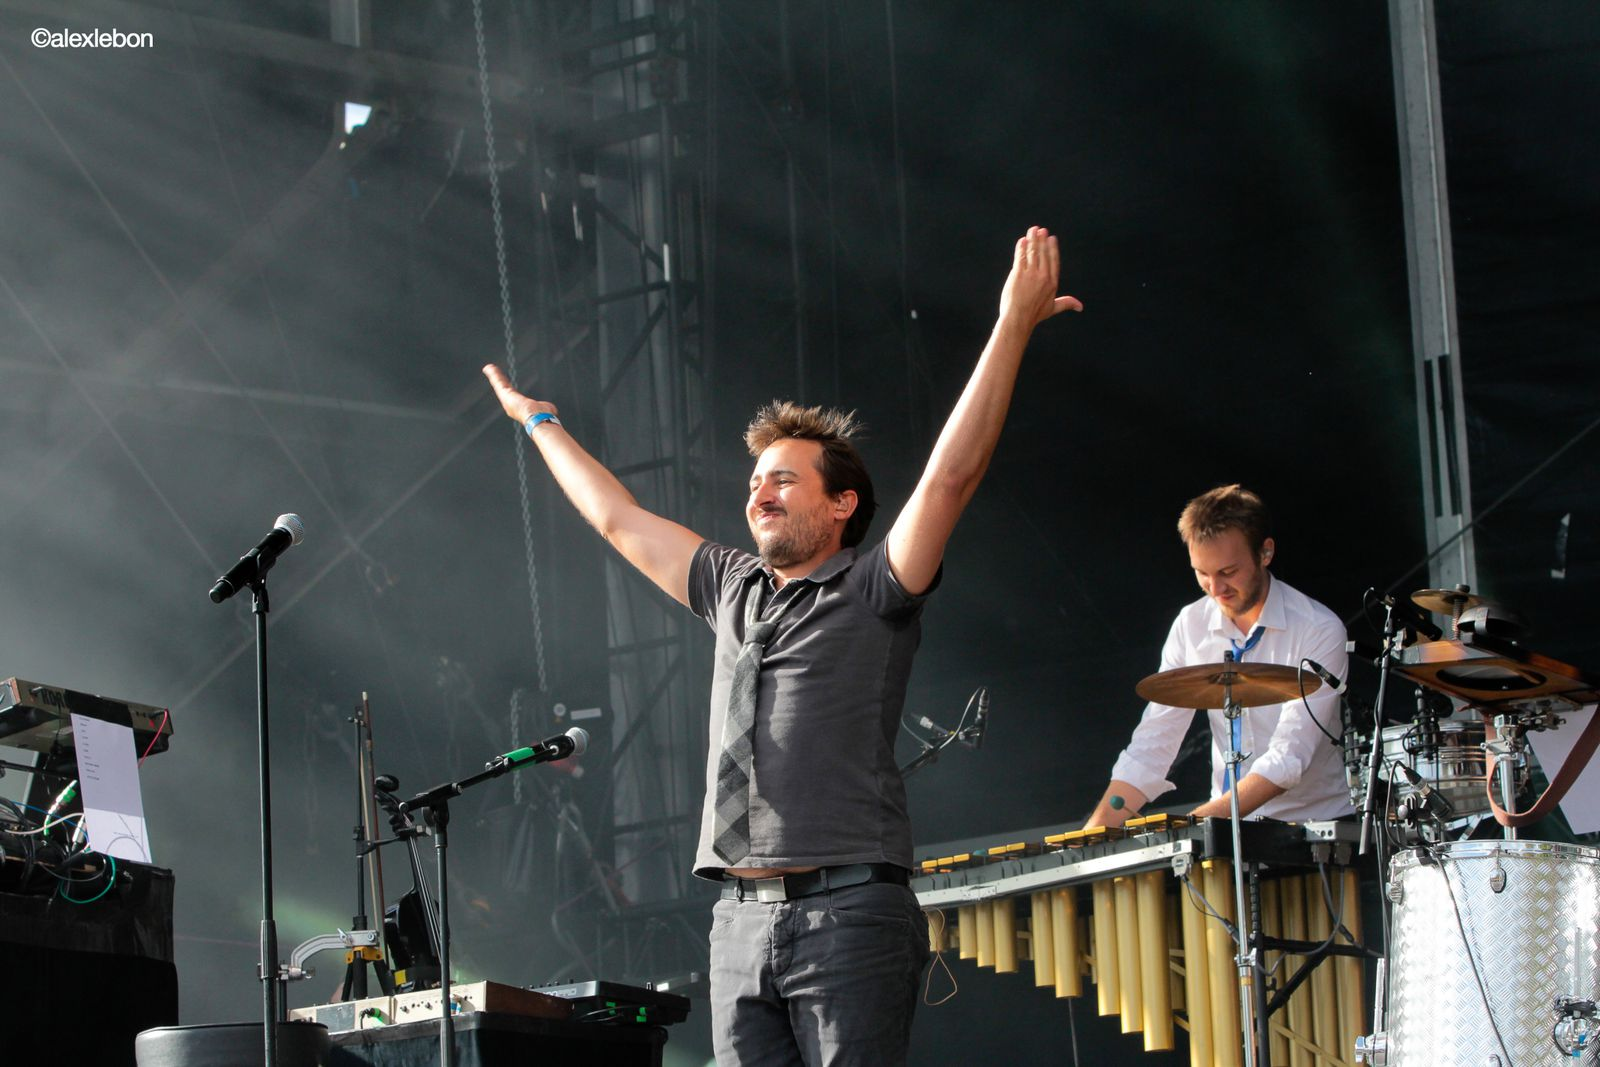 25.08.12 : Agoria, The Black Keys, The Black Seeds, Caravan Palace, dEUS, Ed Sheeran, Granville, The Temper Trap, Of Maximo Park, Monsters & Men, Noël Gallagher, Speech Debelle, Ume...